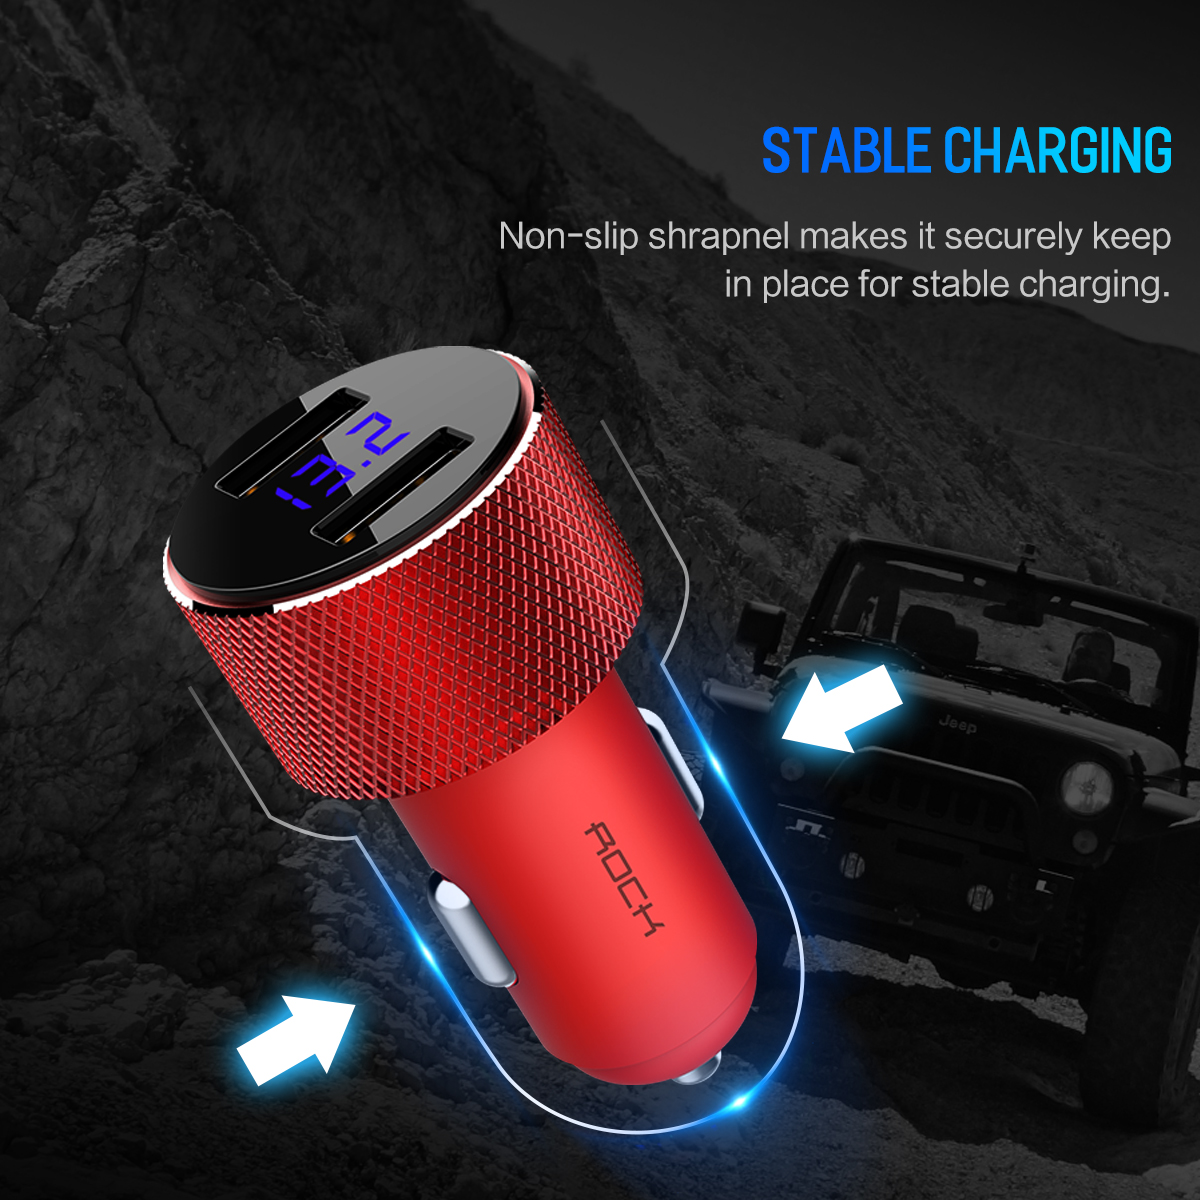 HTB1qYI sC8YBeNkSnb4q6yevFXaS - ROCK 5V 3.4A Metal Dual USB Car Charger Digital Display For iPhone X 8 XS MAX 7 Xiaomi Samsung Fast Charging Voltage Monitoring